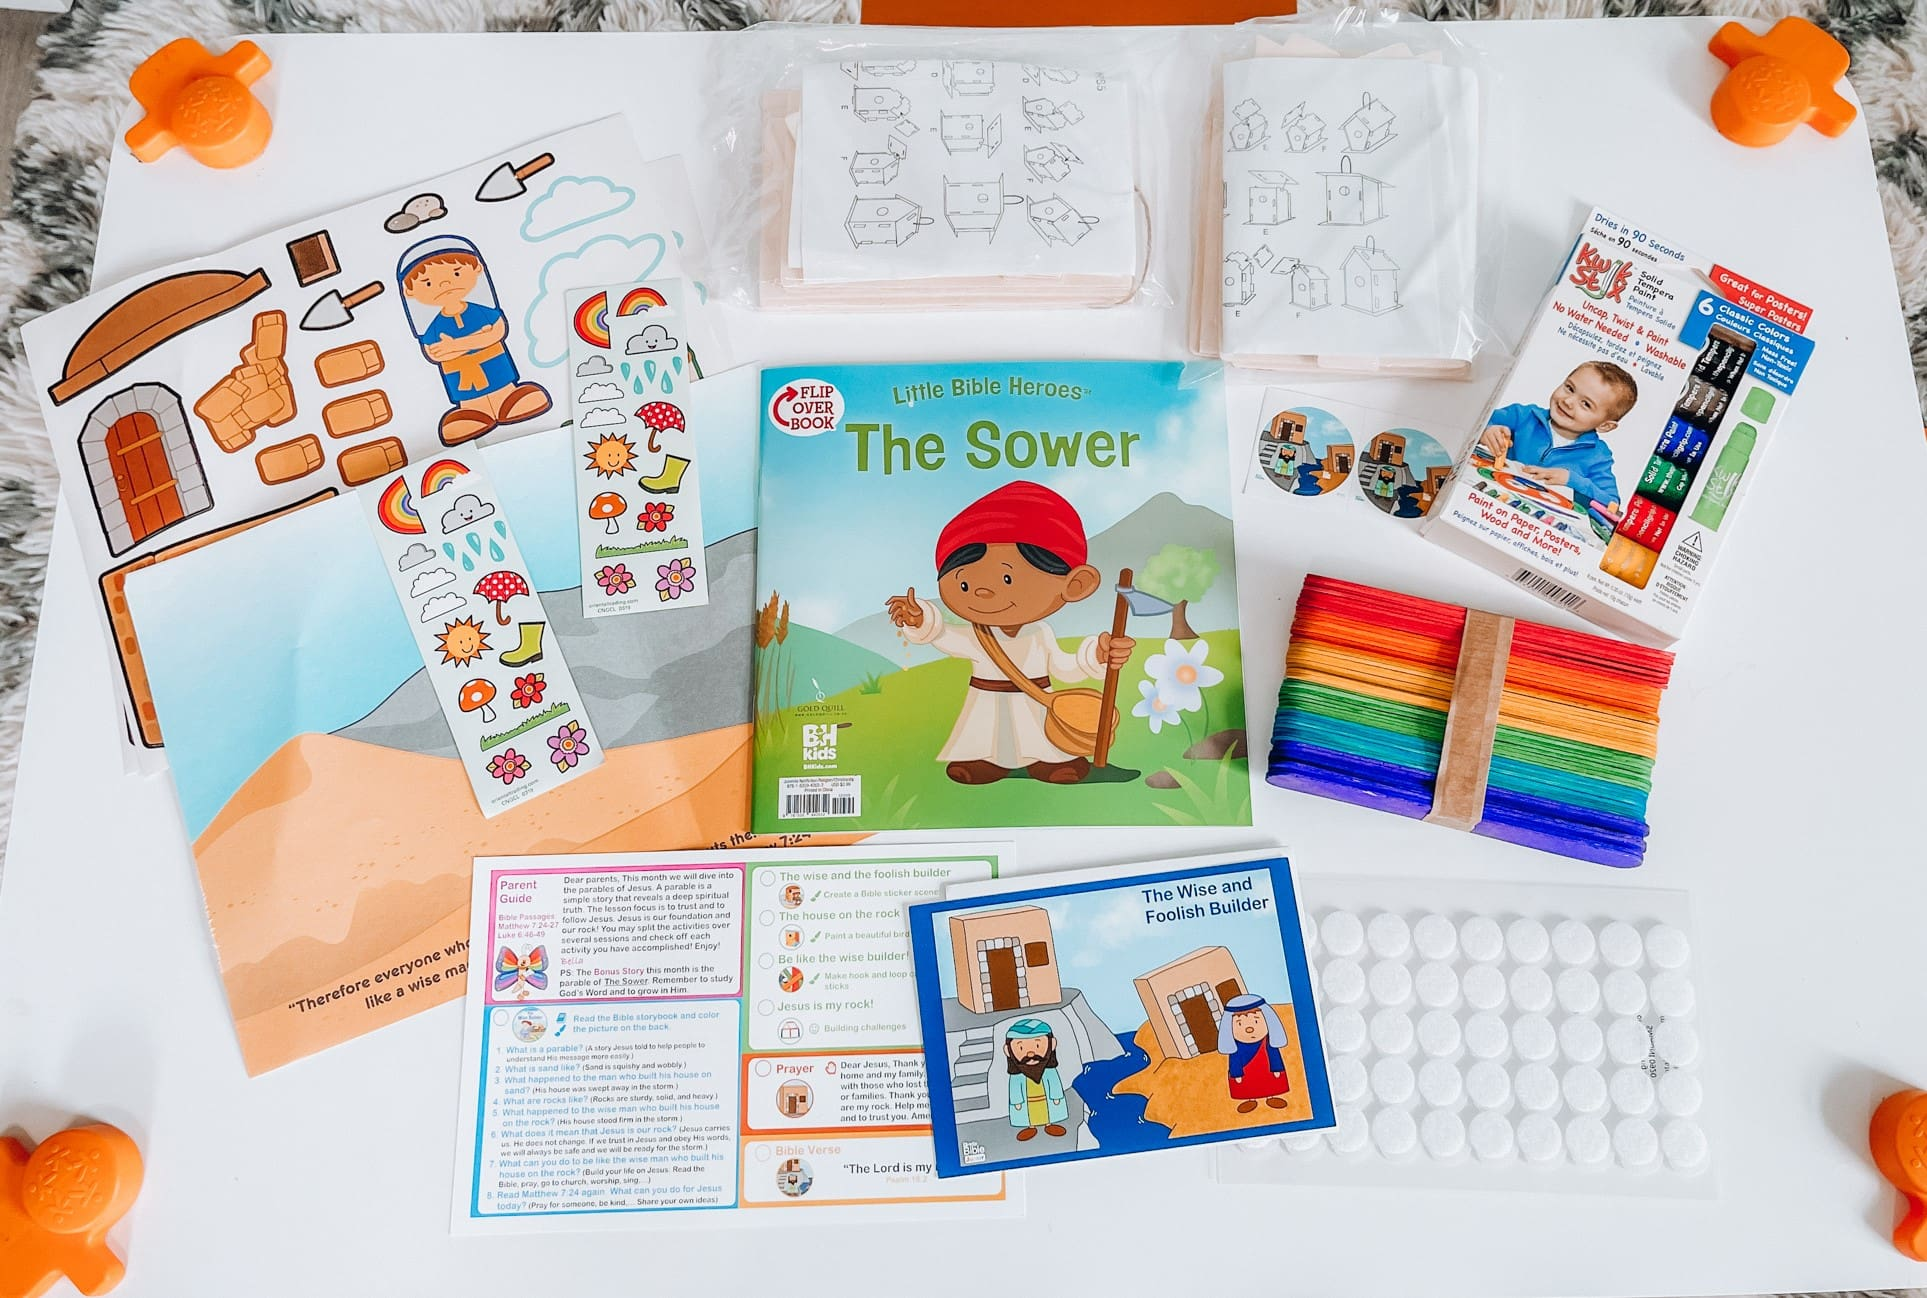 Hello Bible Junior Subscription Box Review: Is it Worth it?